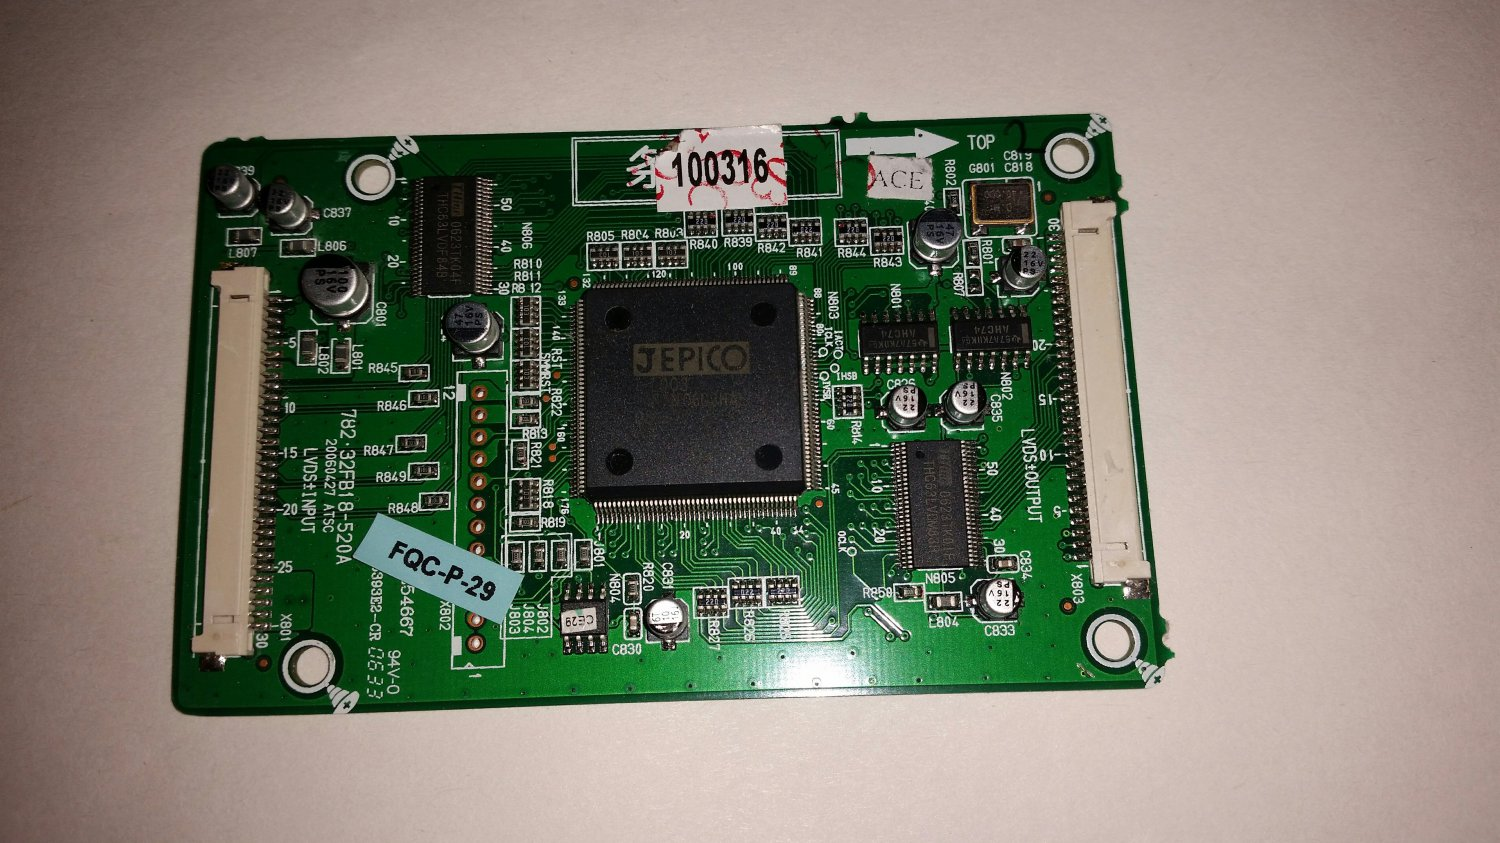 782.32FB18-520A, 20060427 ATSC, 667-32FB18-52, T-Con Board For Insignia